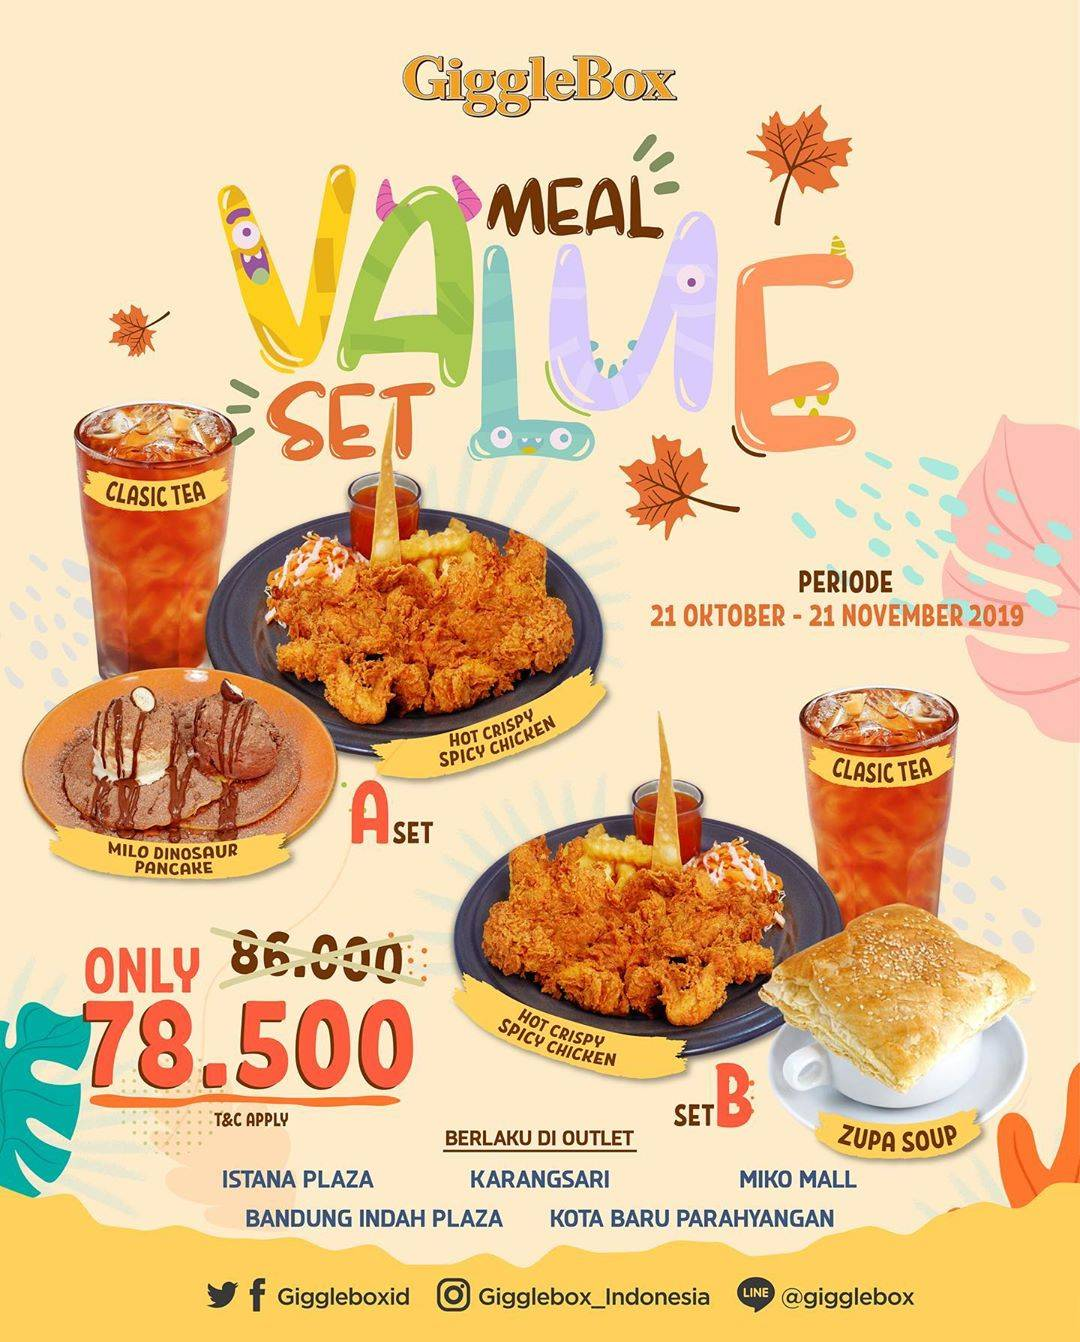 Giggle Box Promo Value Set Meal Only Rp 78.500